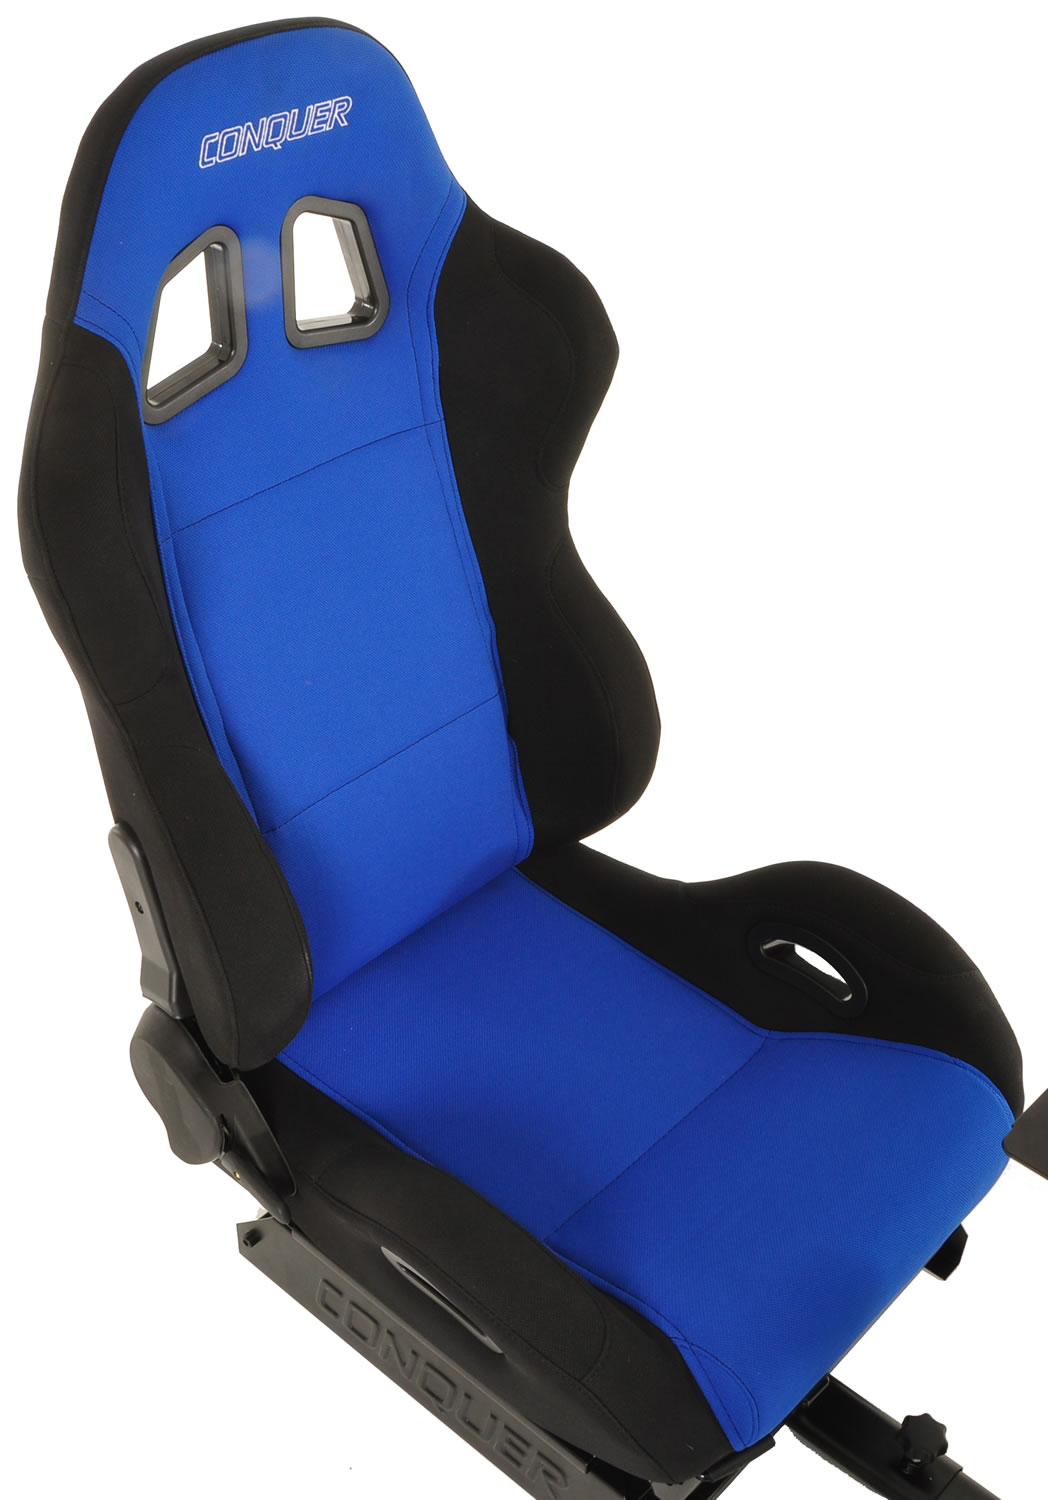 Conquer-Racing-Simulator-Cockpit-Driving-Seat-Reclinable-with-Gear-Shifter-Mount miniatuur 19